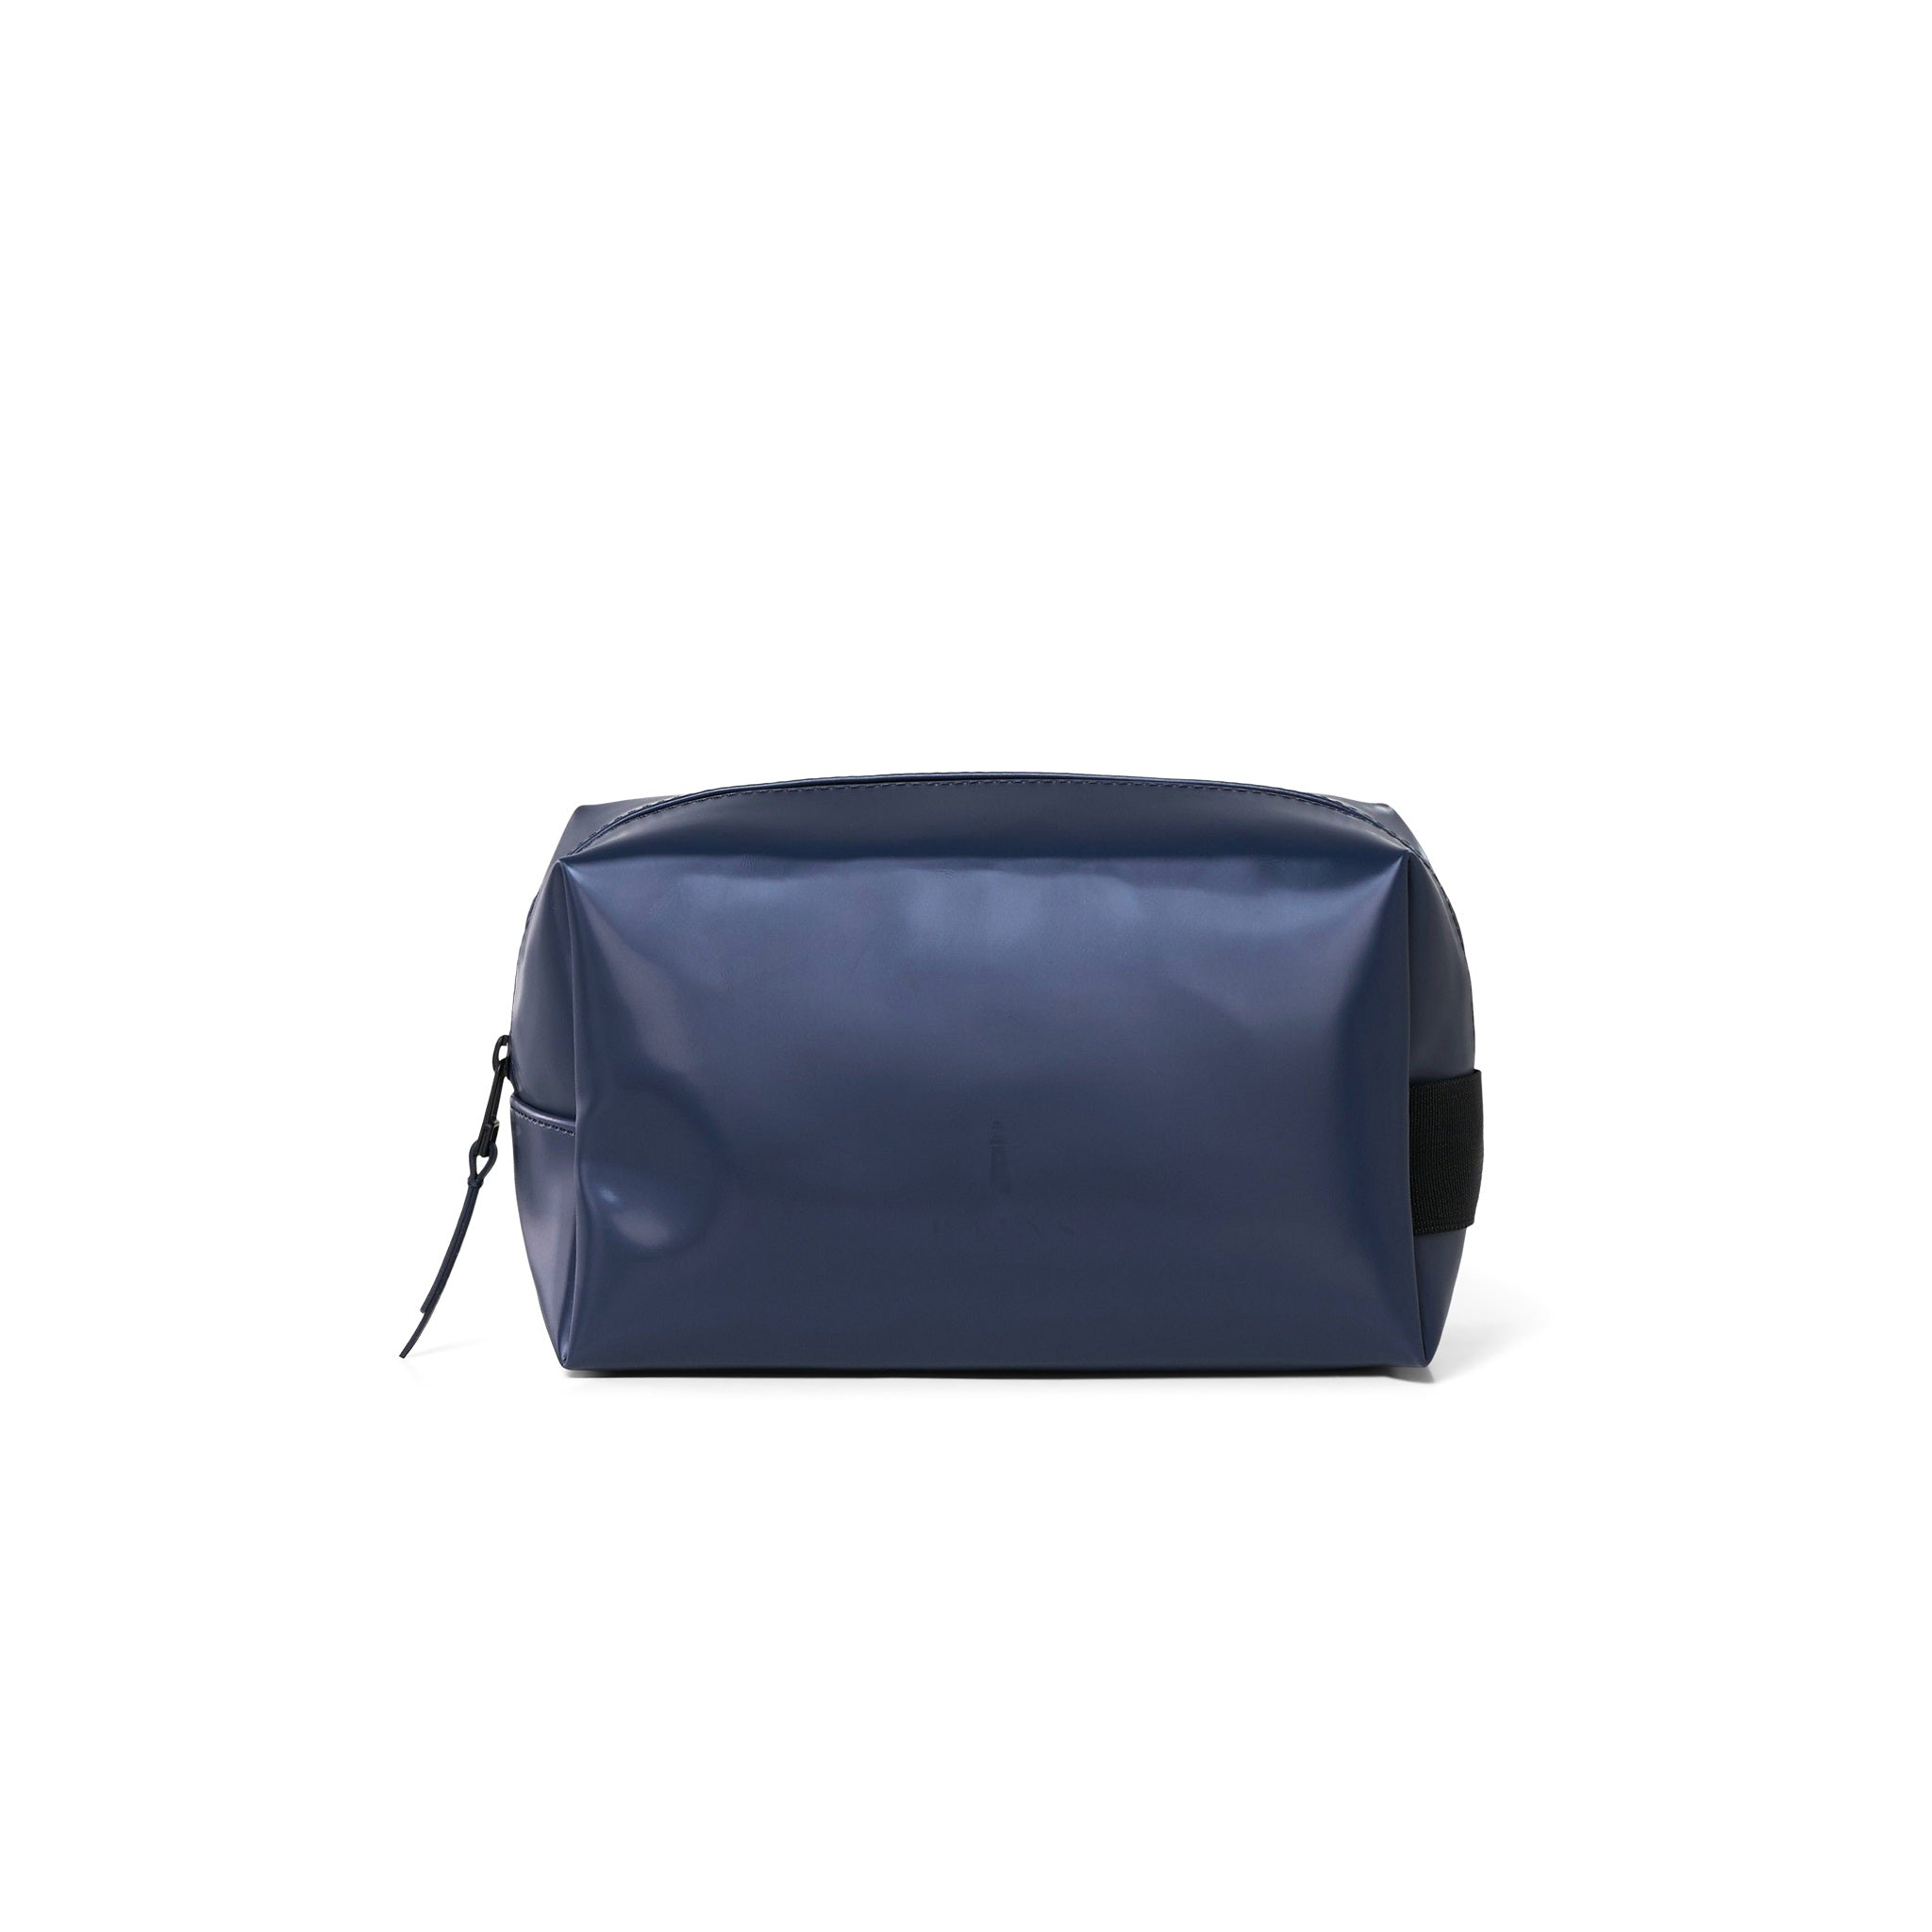 Wash bag small shiny blue